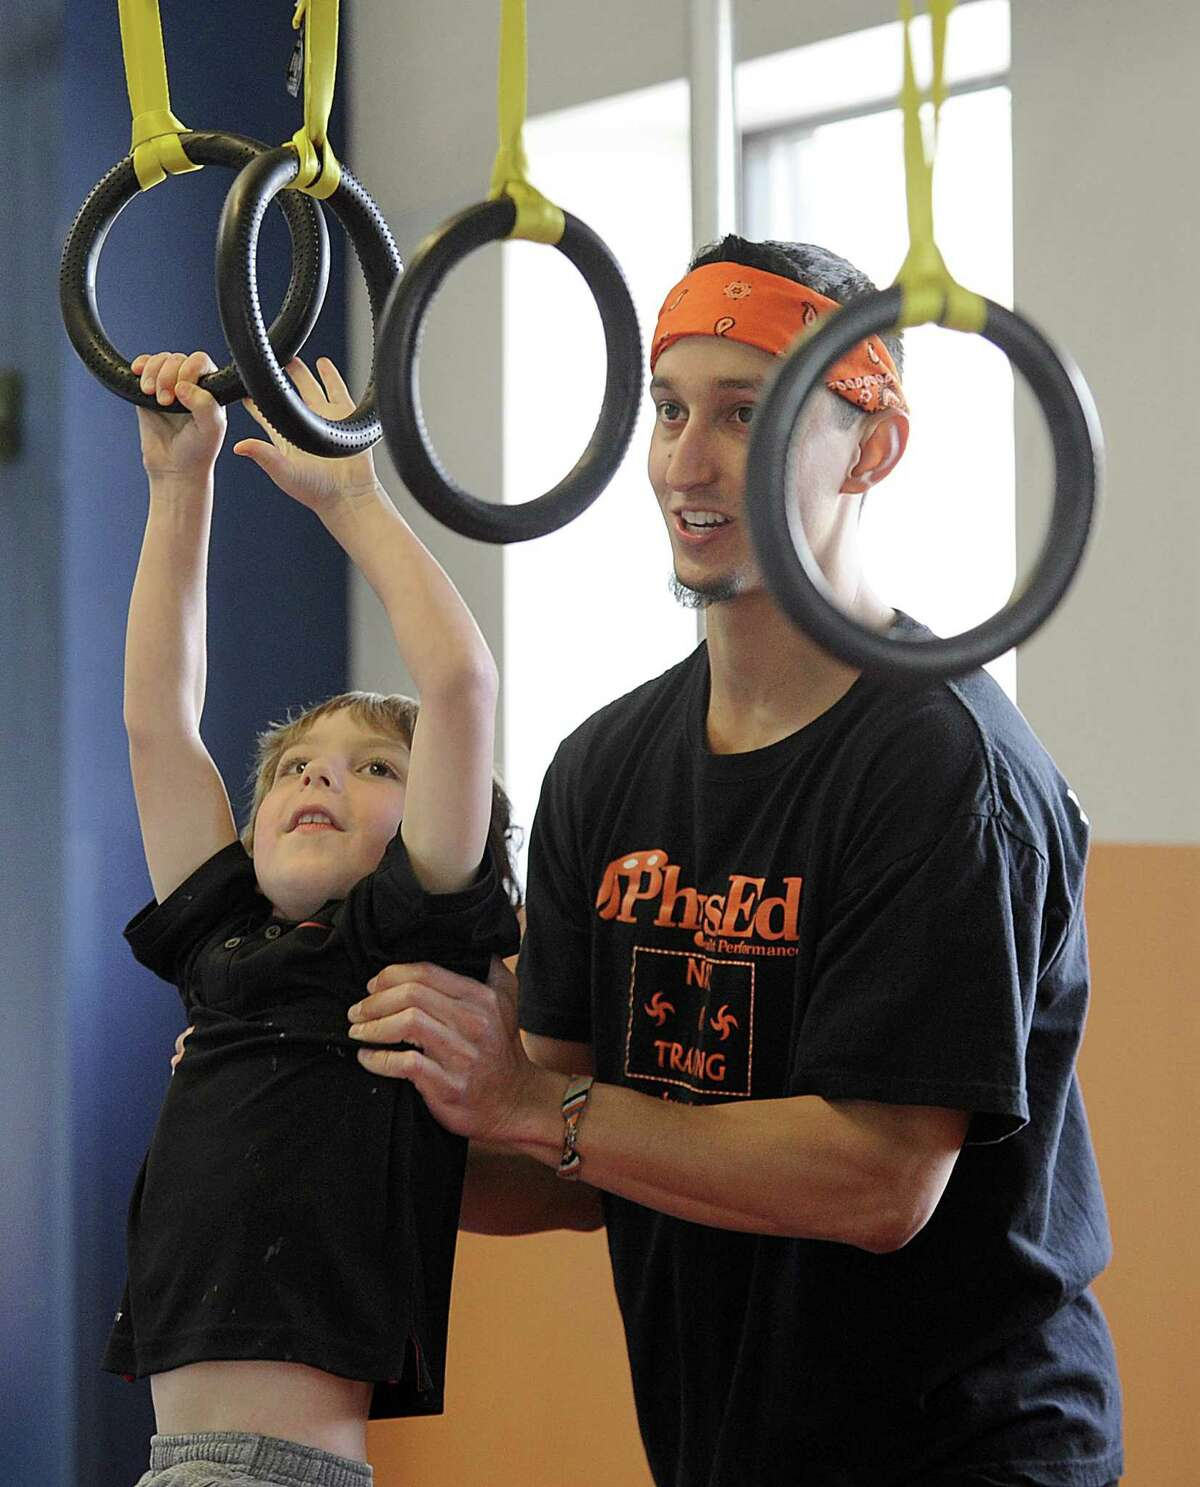 Jean Claude Chacon-Saucy guides Max Bonnell, 5, of Sherman, through a Ninja-Warrior inspired set of challenges Monday, April 17, 2017. Chacon-Saucy will compete in the American Ninja Warrior TV show next month.